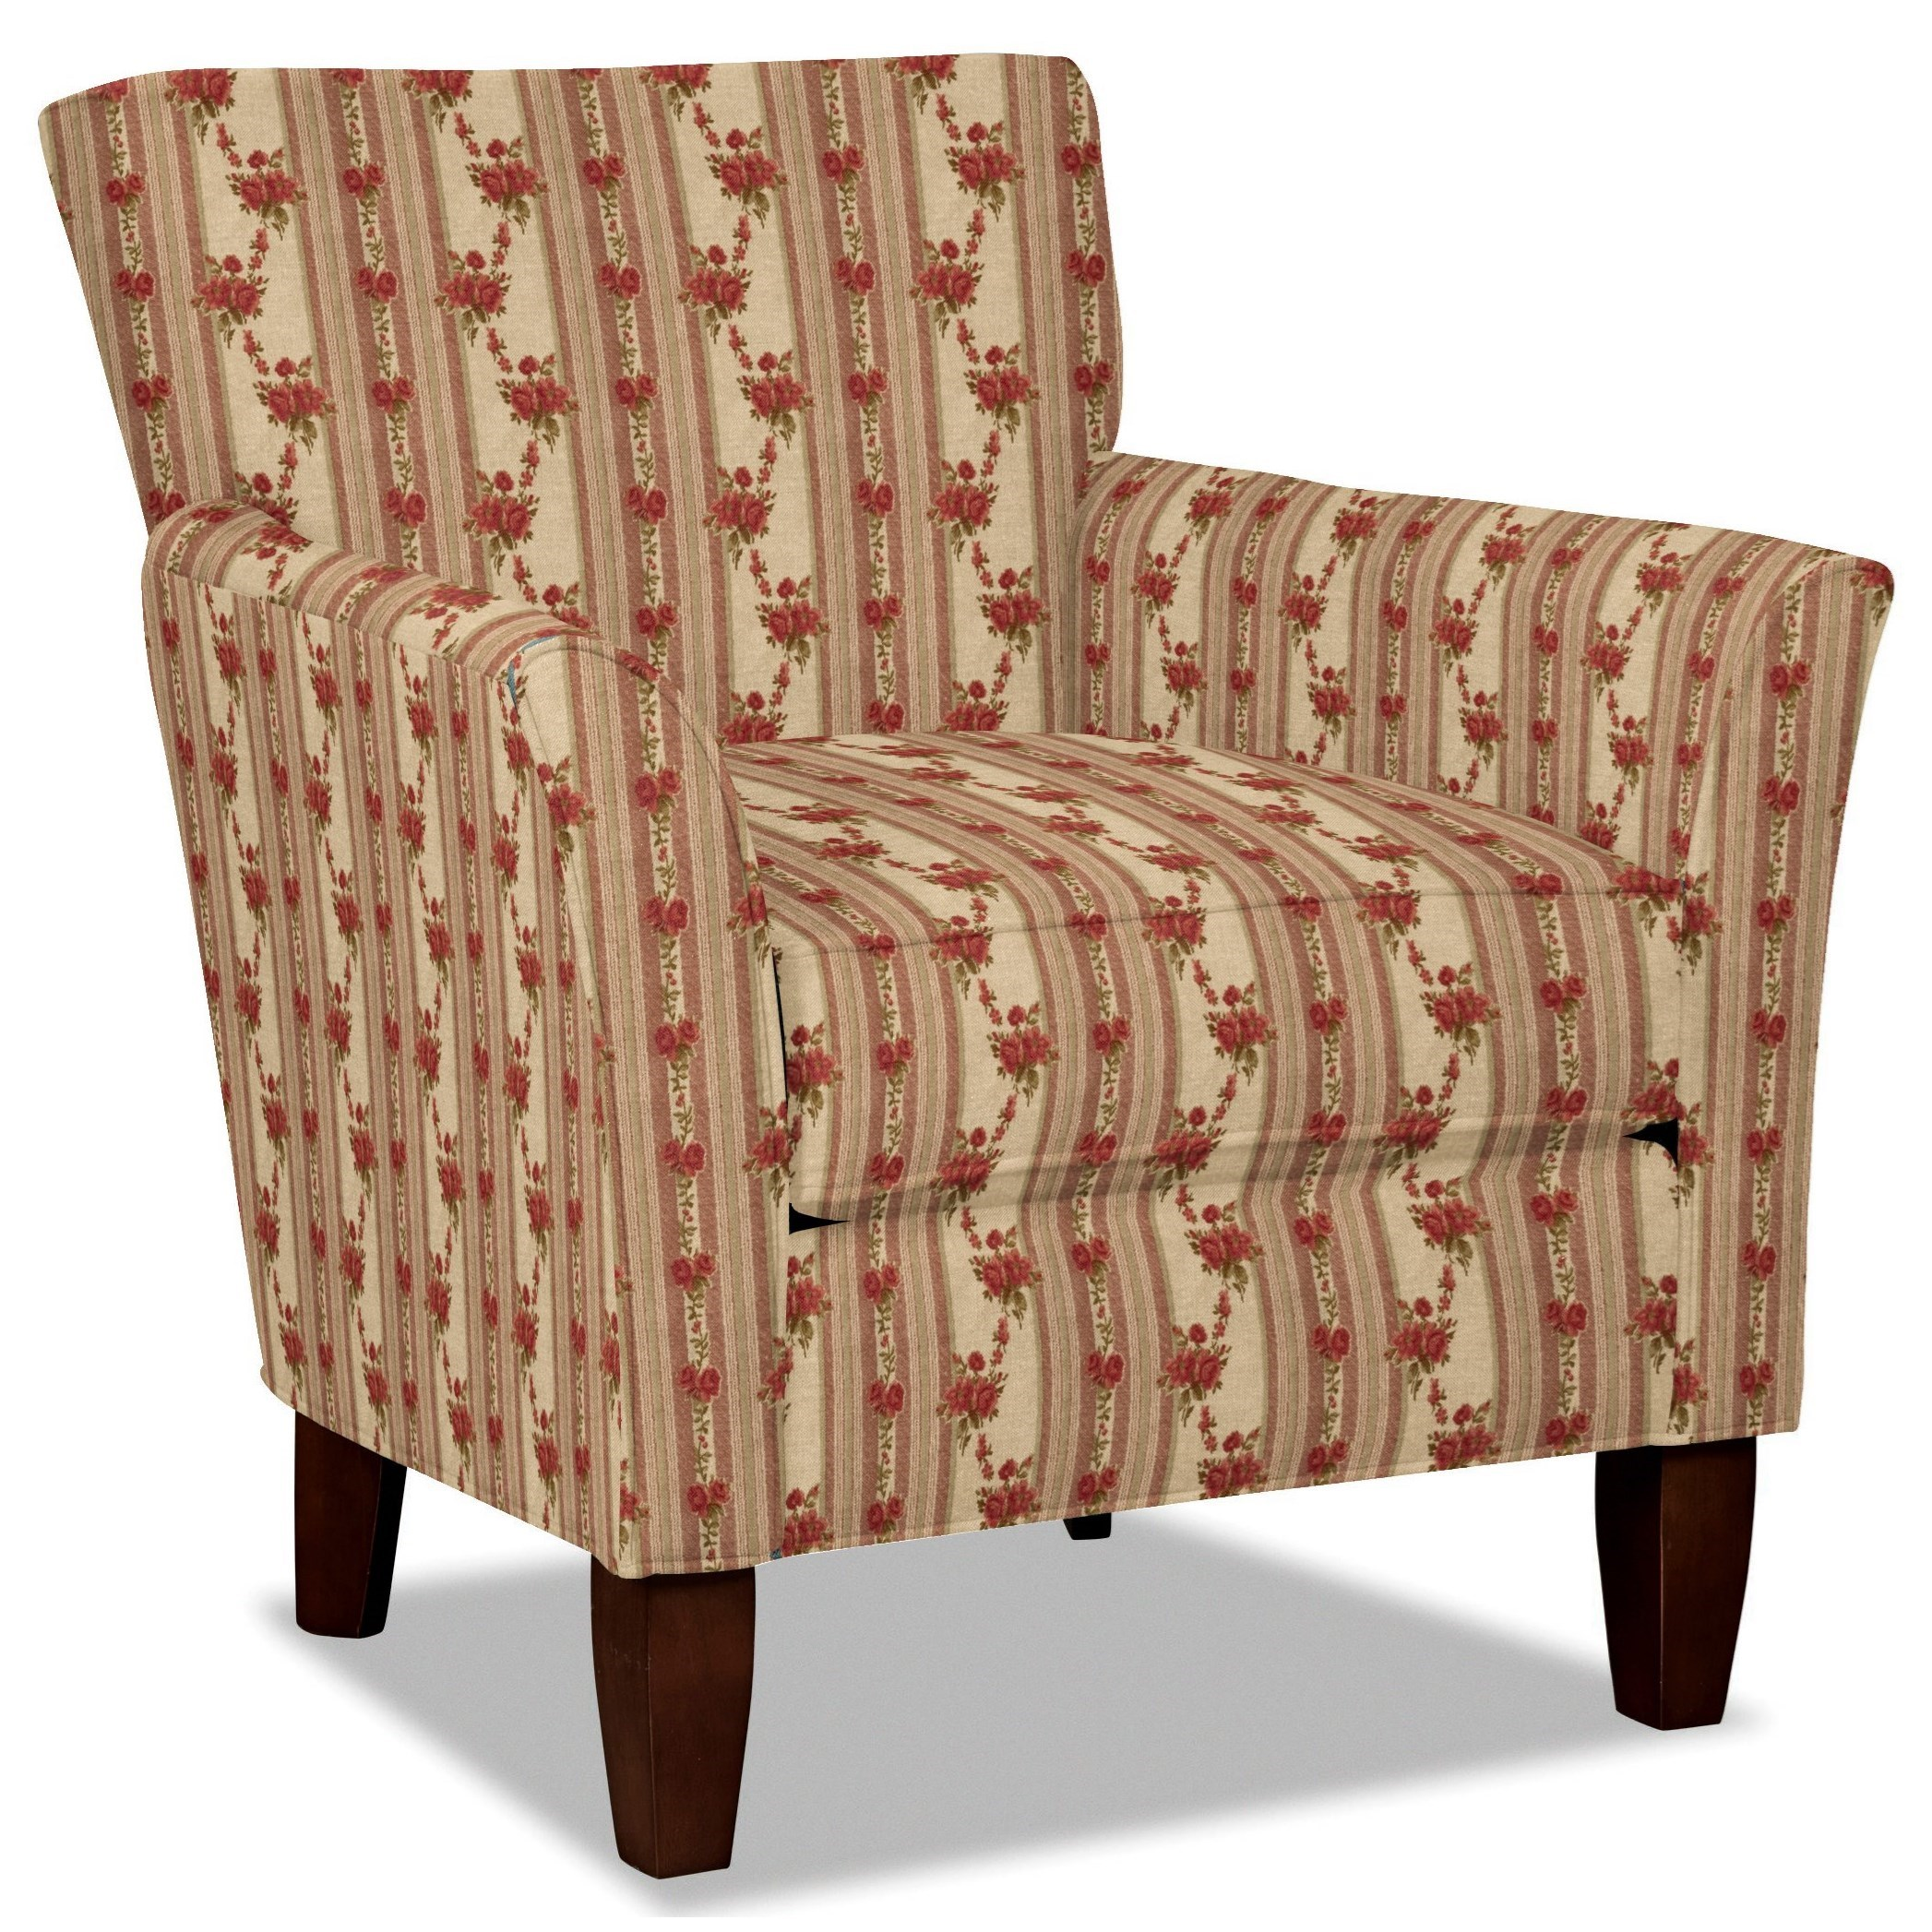 Craftmaster 060110 Accent Chair - Item Number: 060110-BENSALEM-26